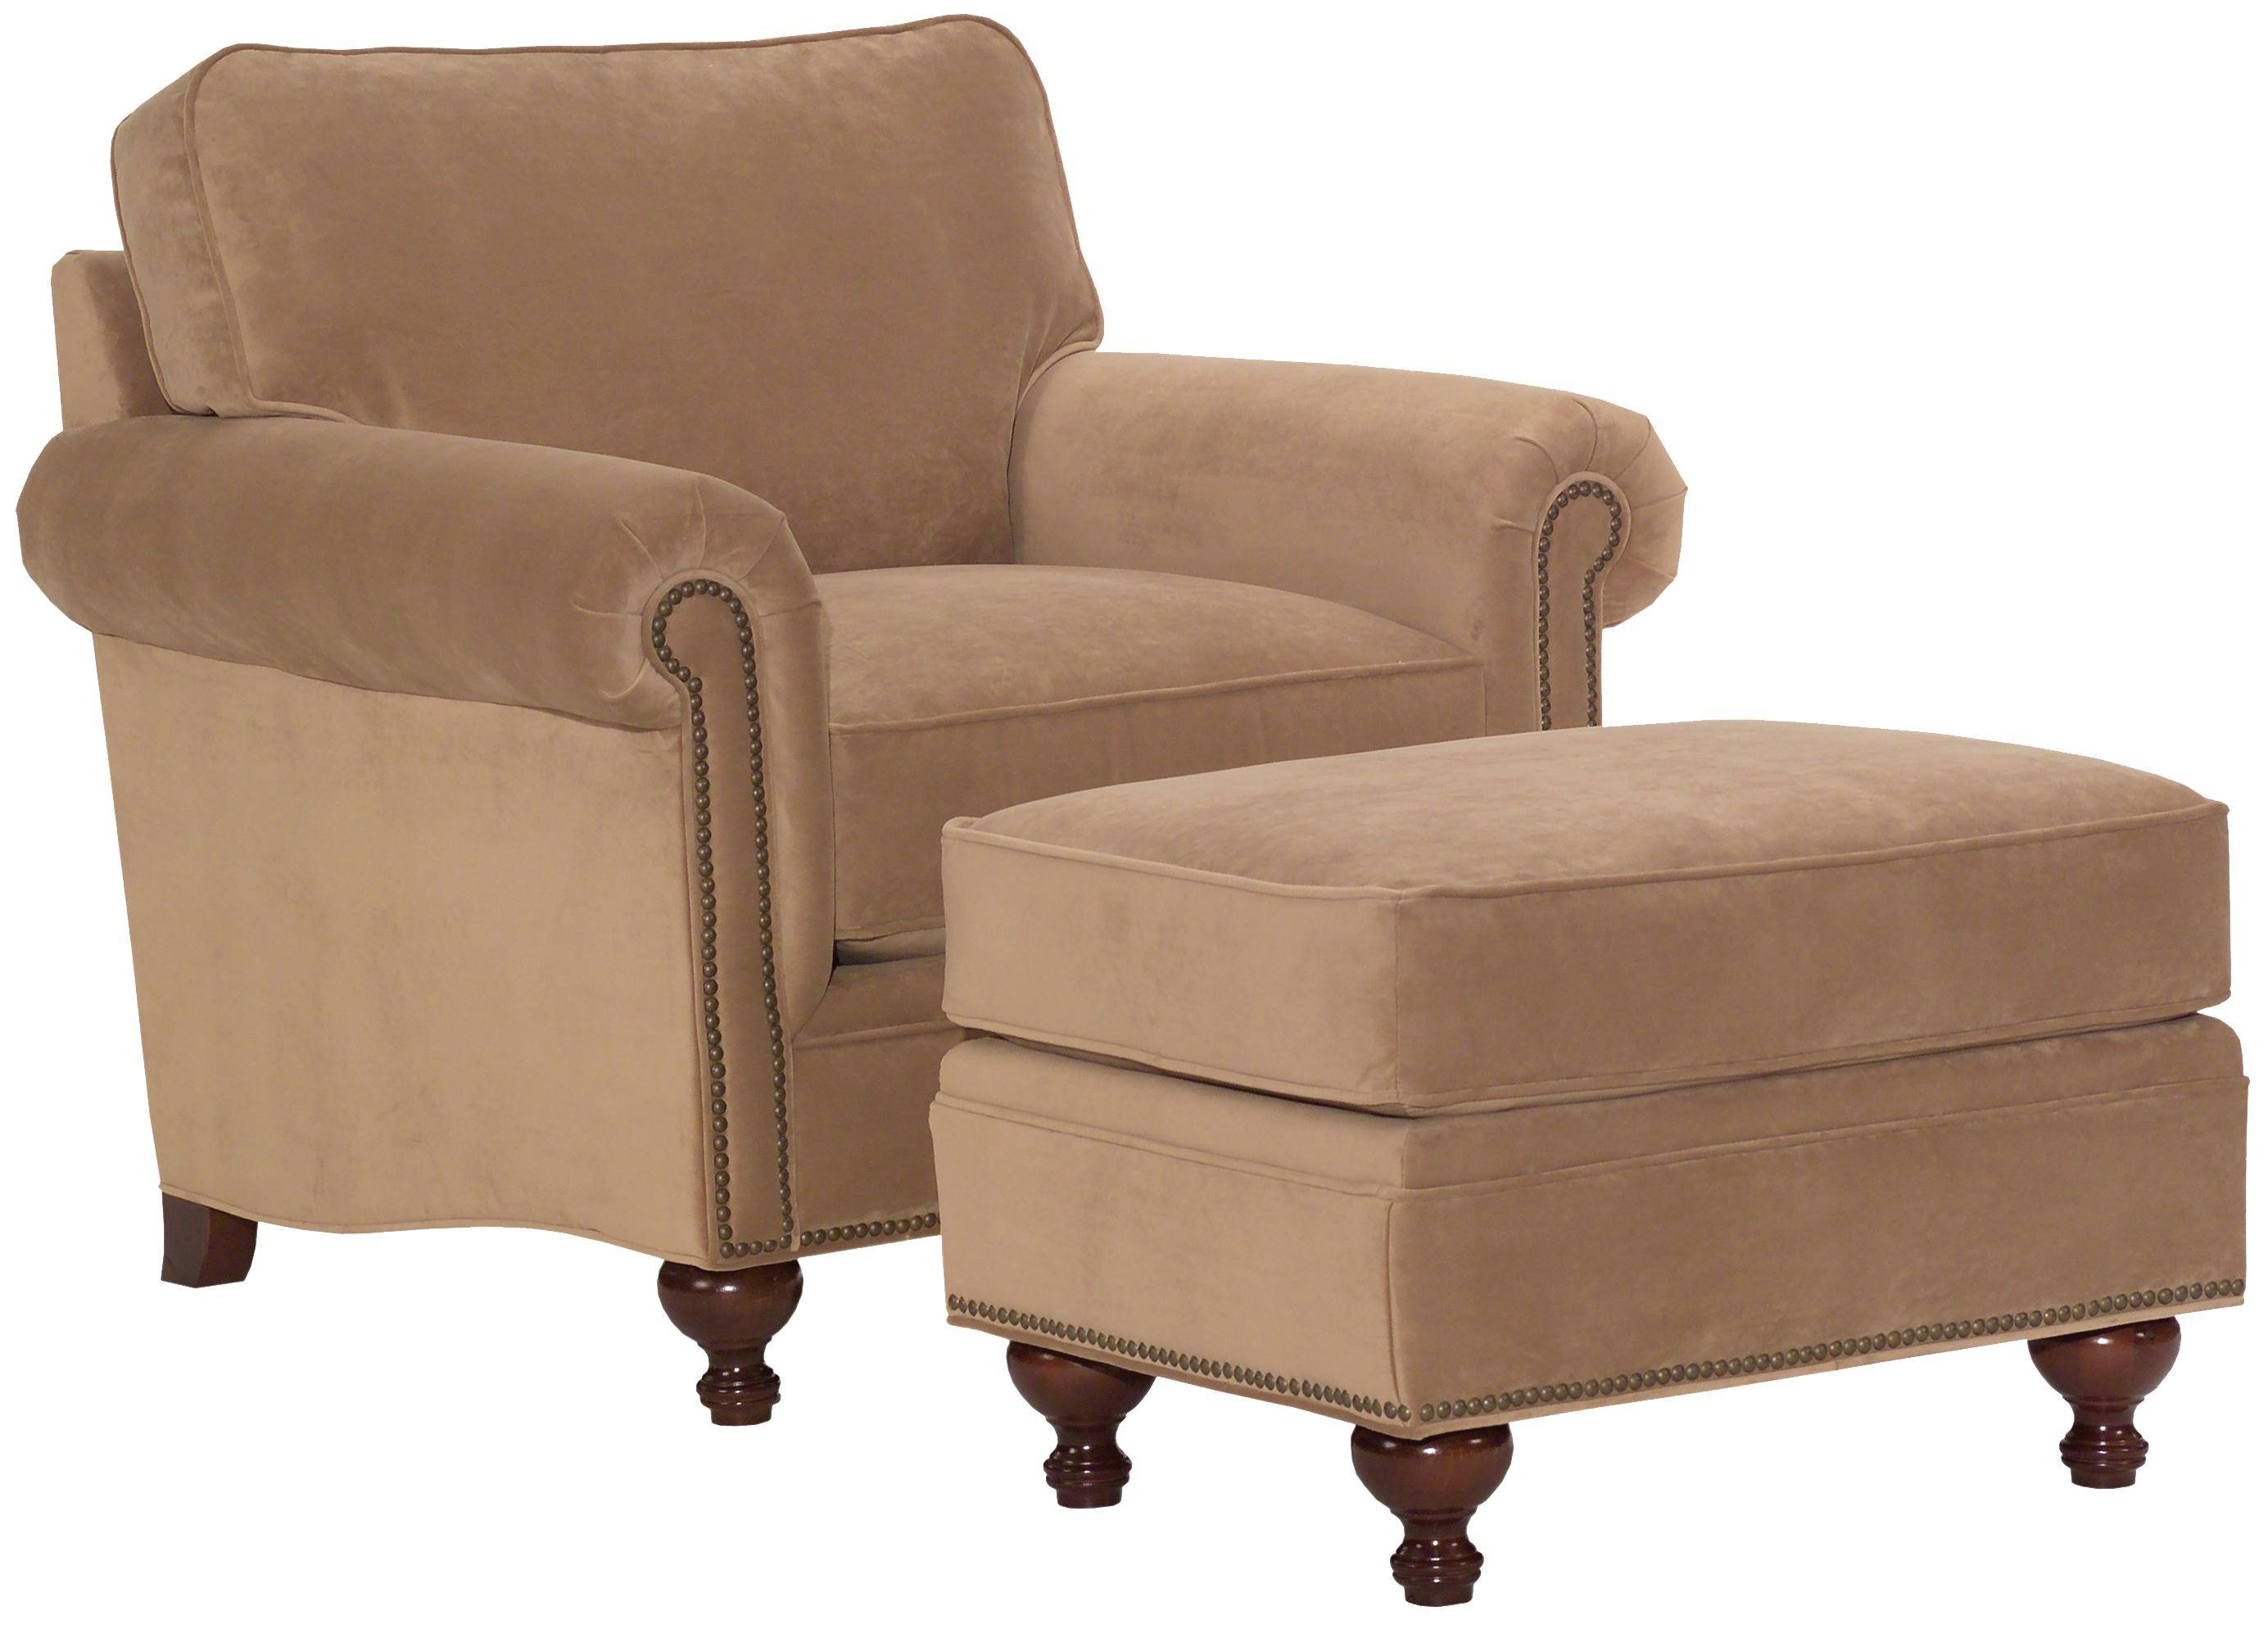 Broyhill Furniture Harrison Traditional Style Chair And Ottoman regarding Sofa Chair With Ottoman (Image 7 of 30)